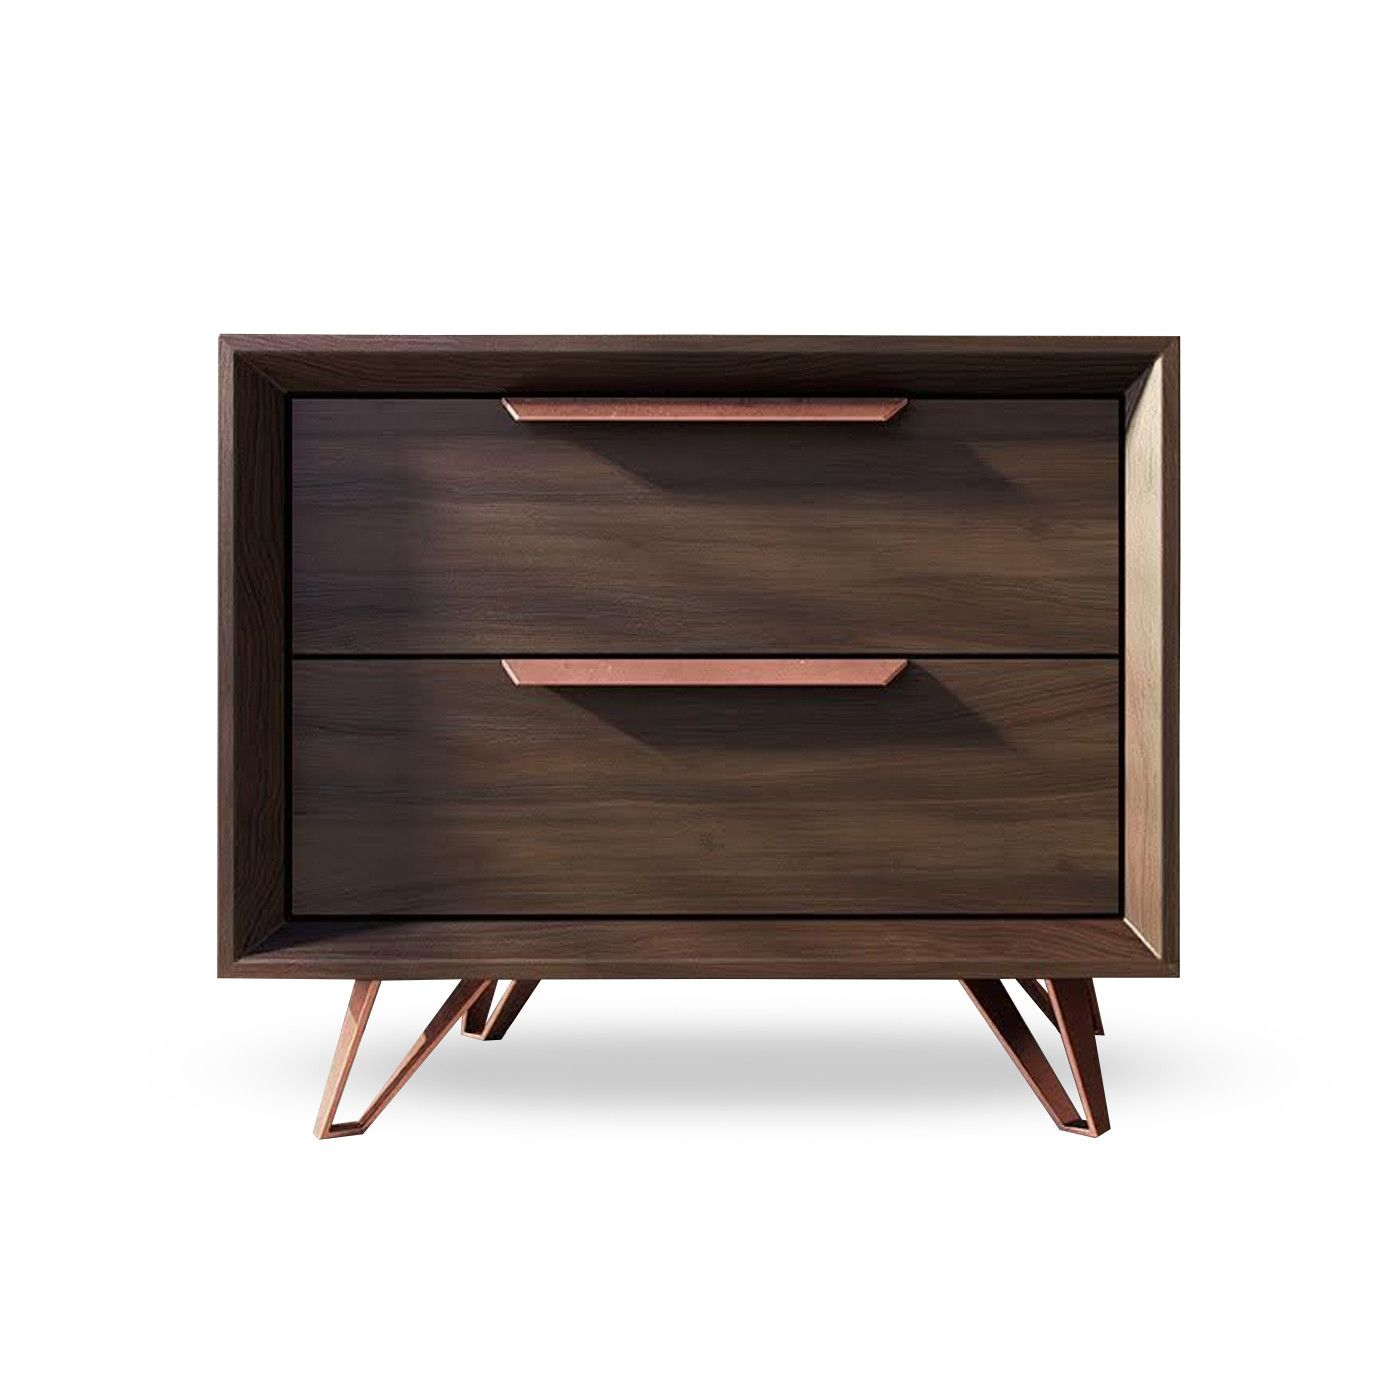 Sleek, Modern, And Beautifully Crafted, The Lomita